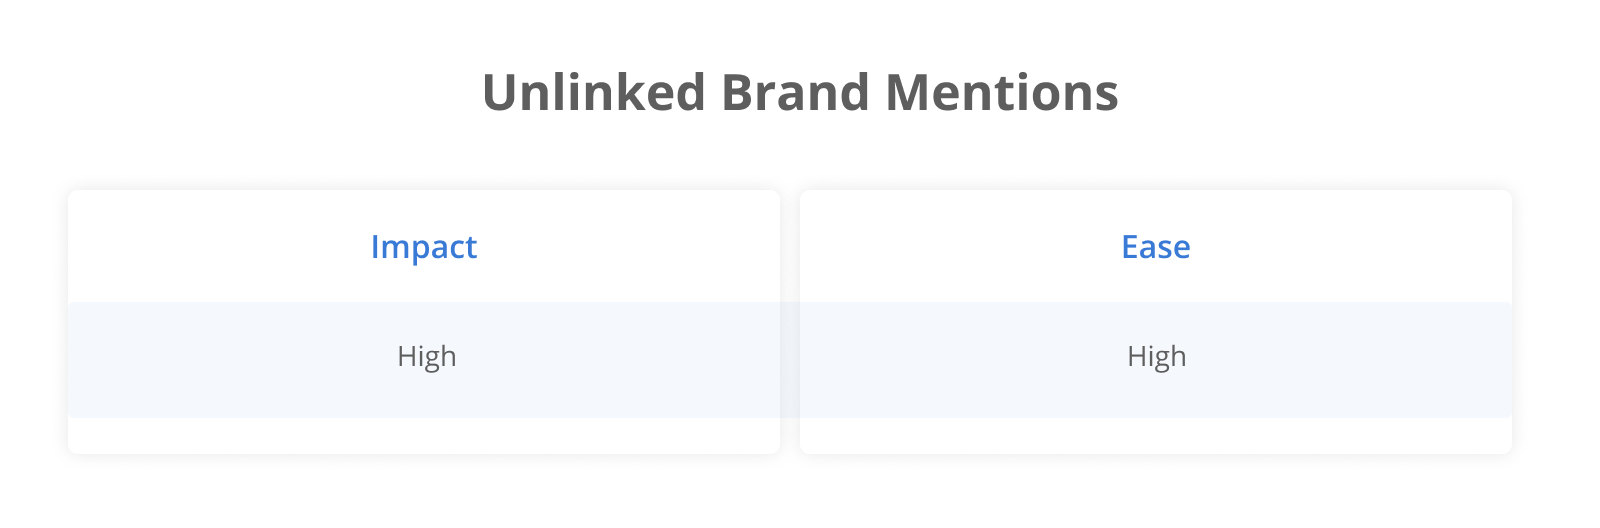 Unlinked Brand Mentions: Impact High; Ease High